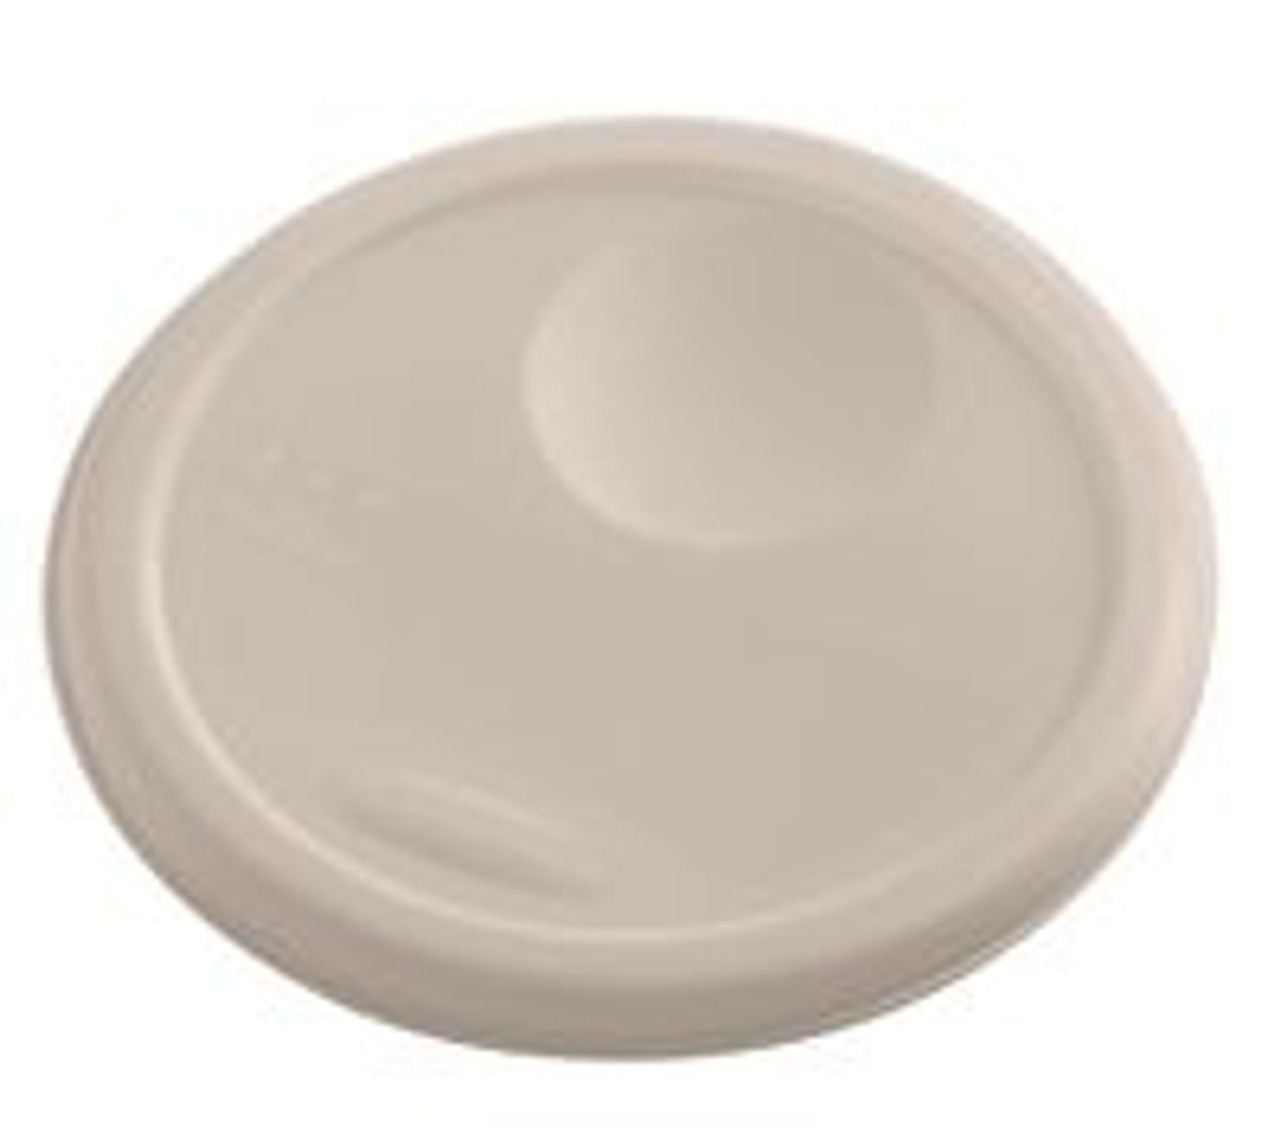 Rubbermaid Round Container Lid - Small Brown - 1980258